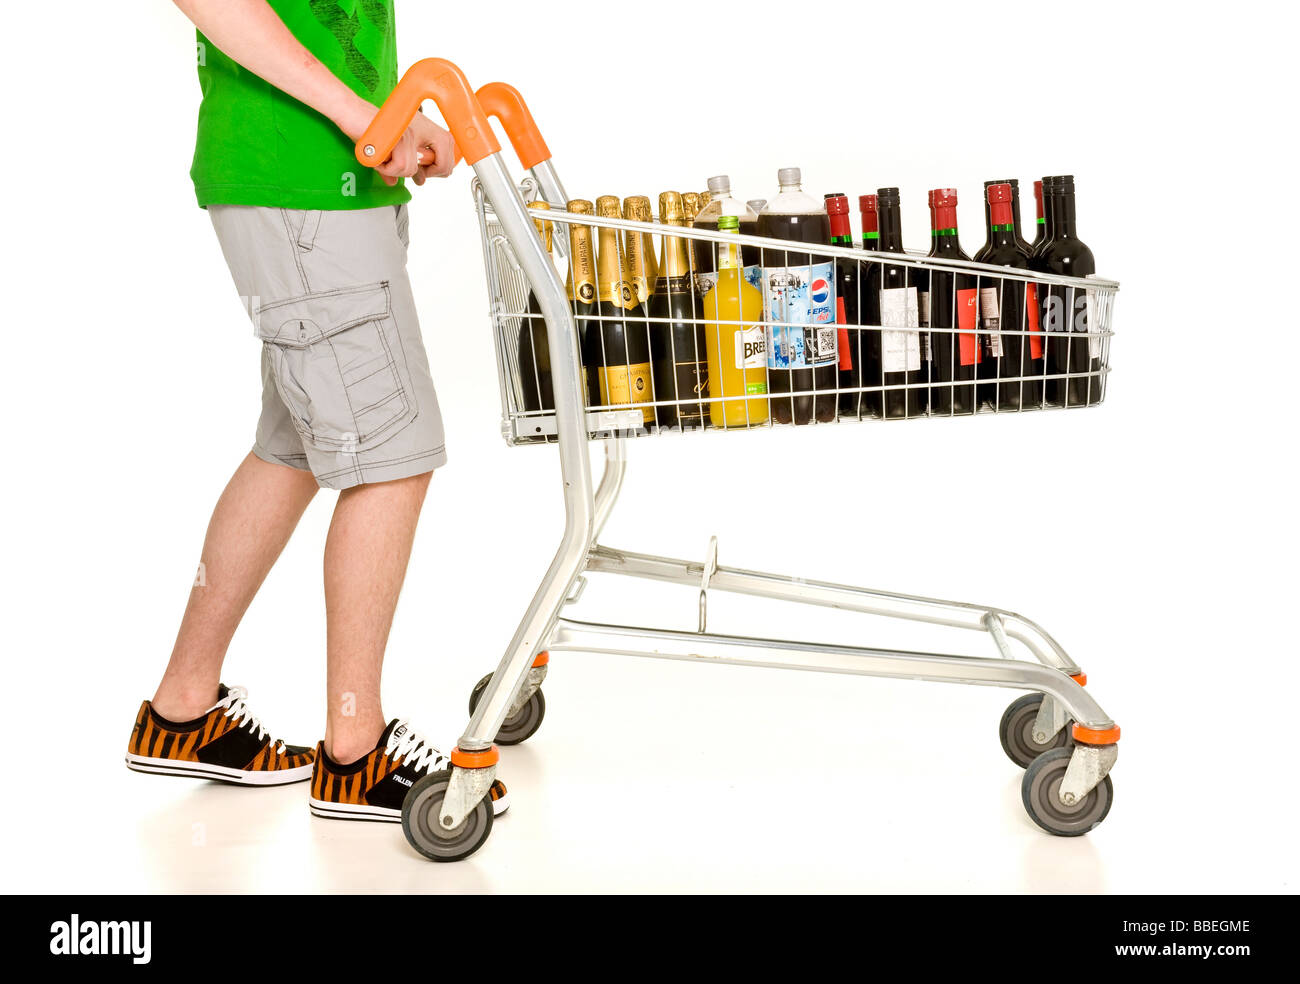 Casually dressed male pushing supermarket shopping trolley filled bottle of wine and champagne - Stock Image